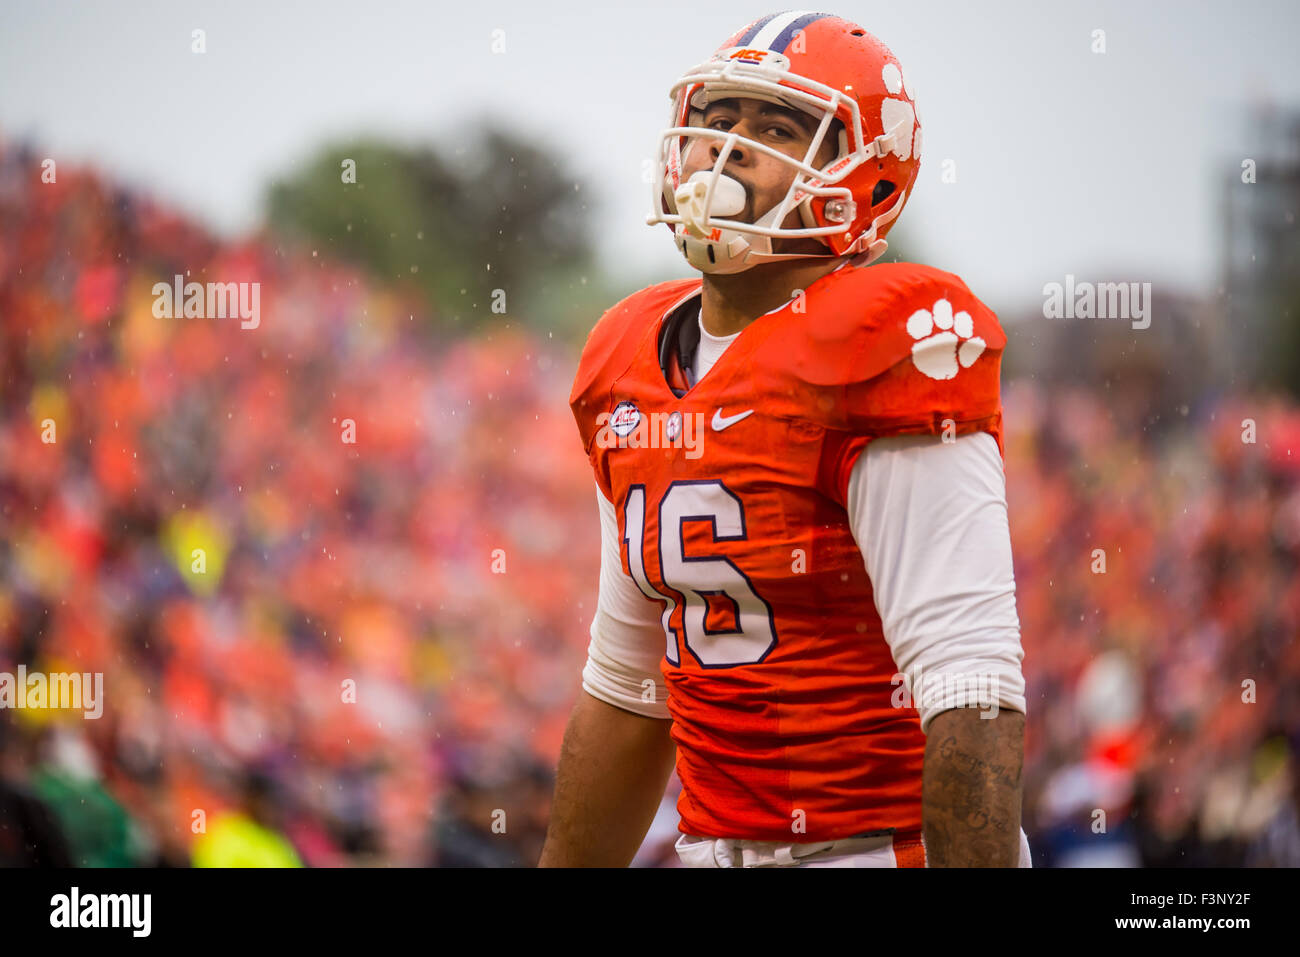 Clemson Tigers Tight End Jordan Leggett 16 After A